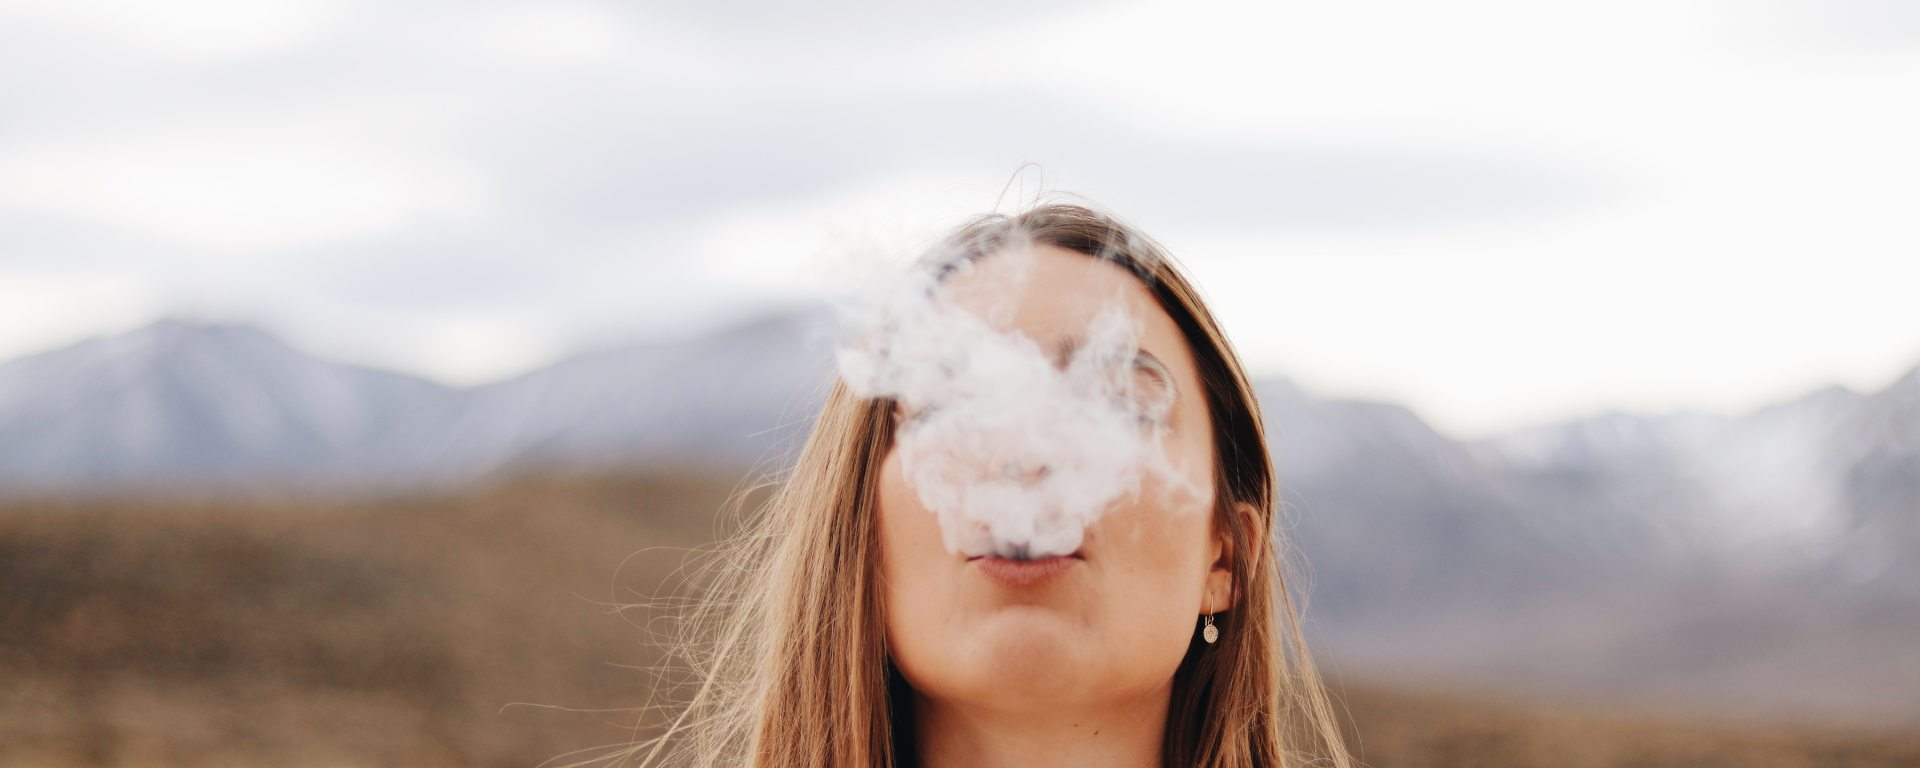 HeyHelloHigh stoner girl smoking near mountains